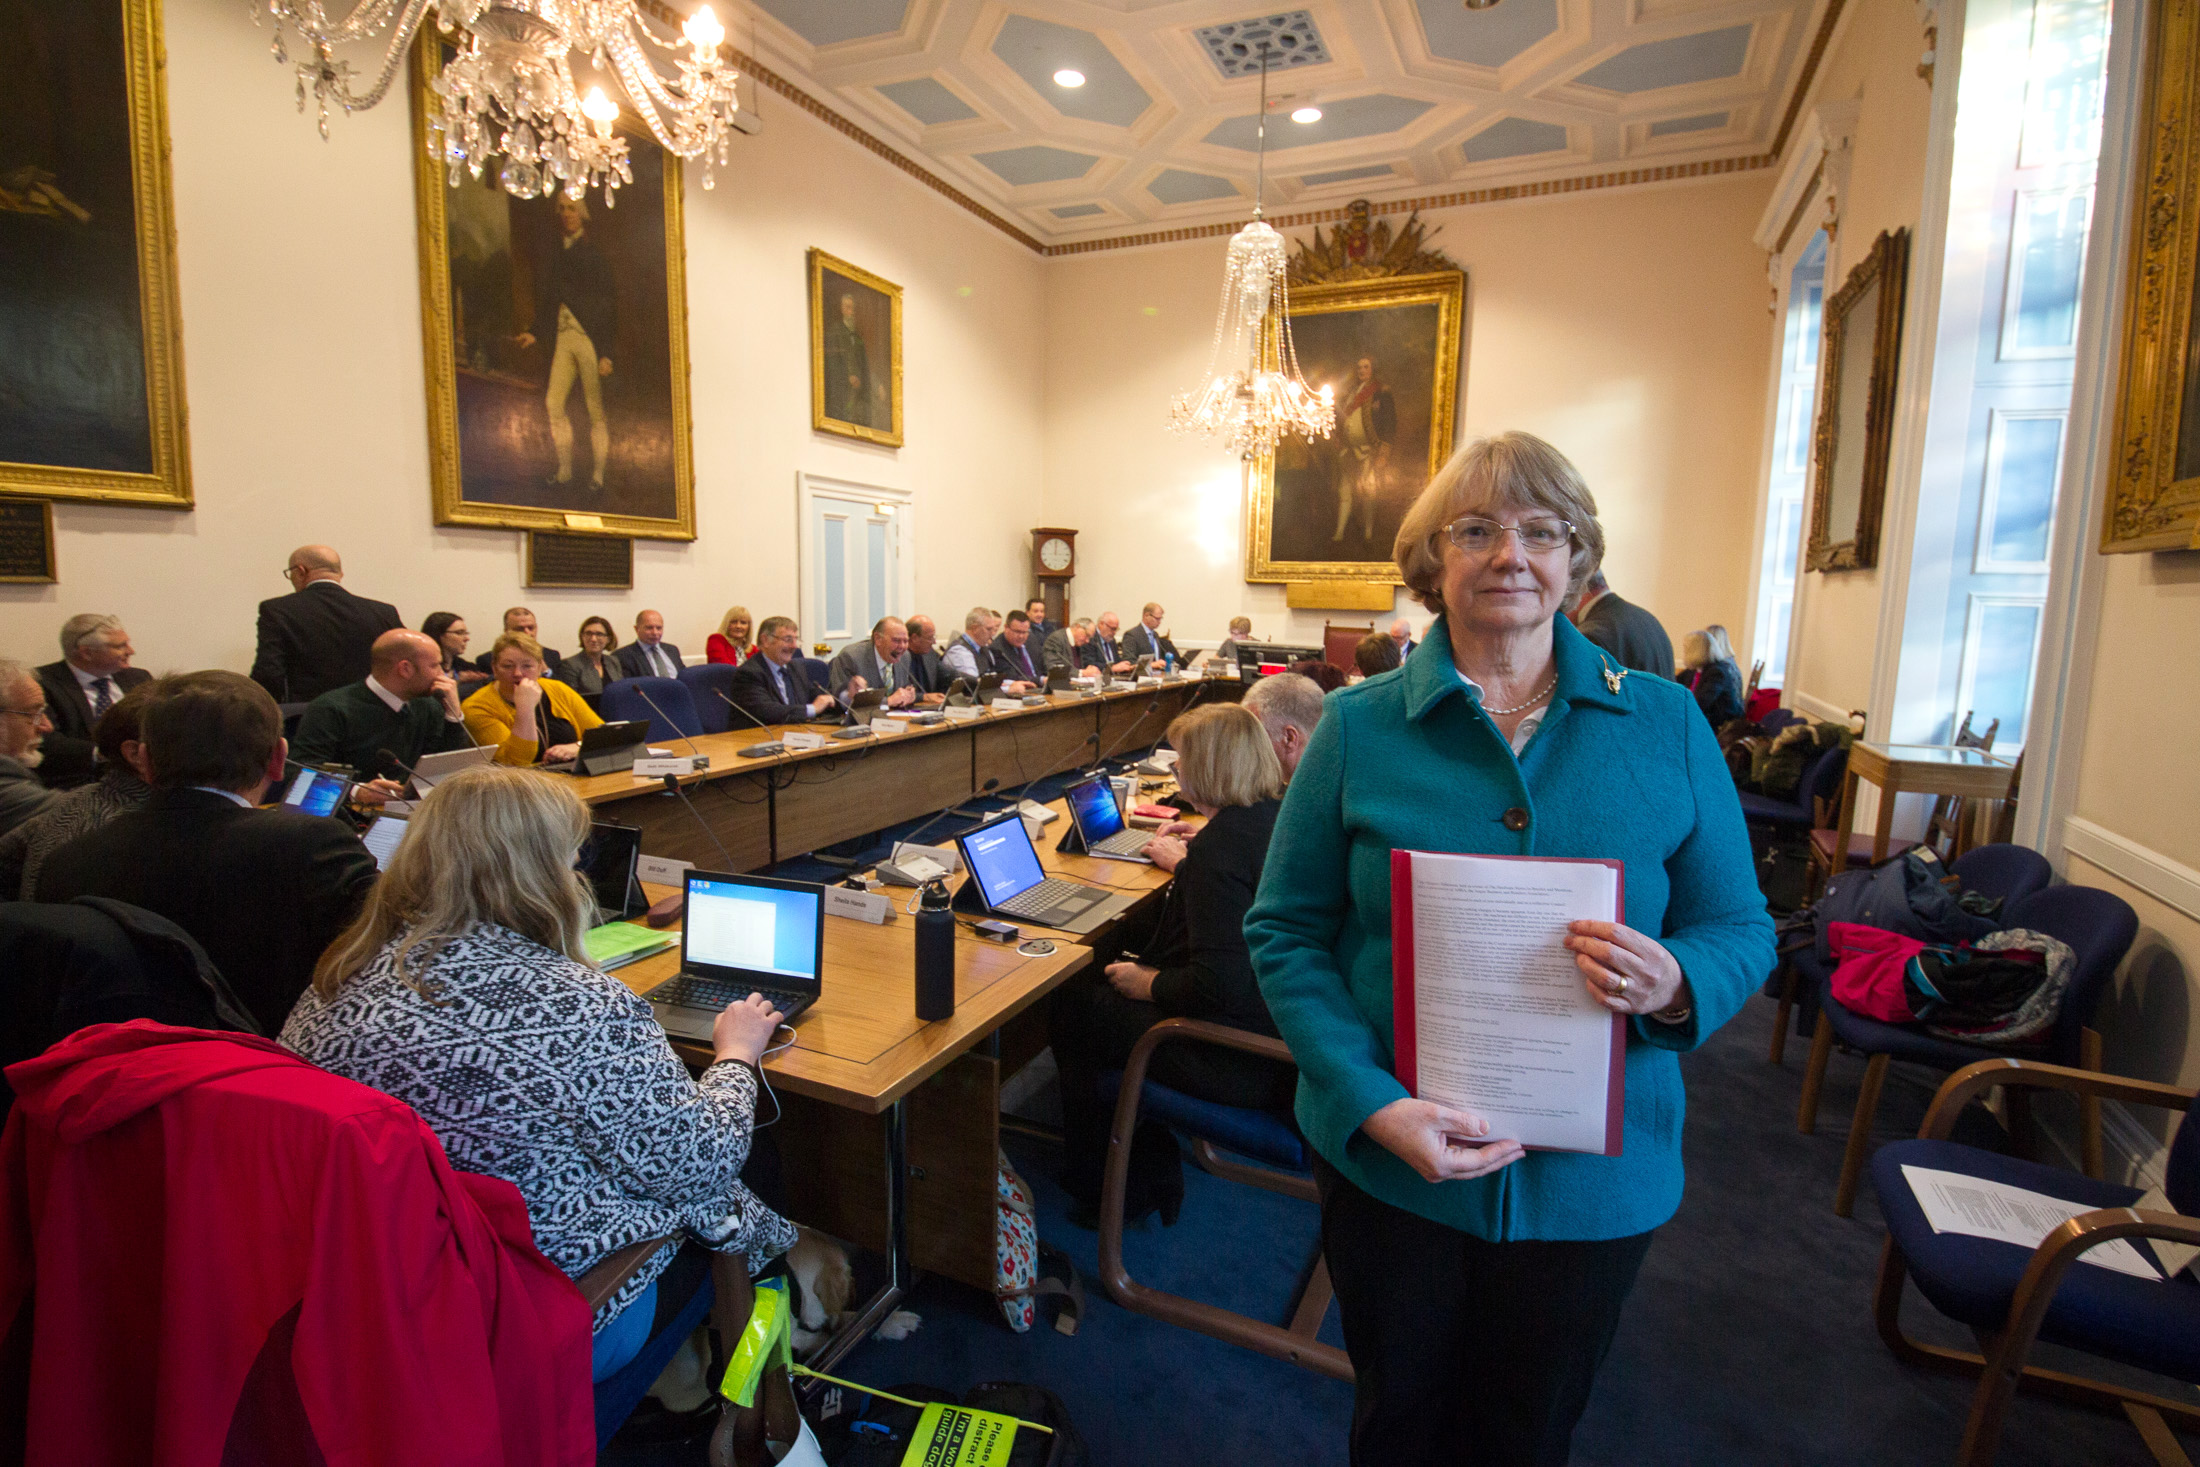 Margaret Robertson discussed the impact of Angus Council parking charges on her business.